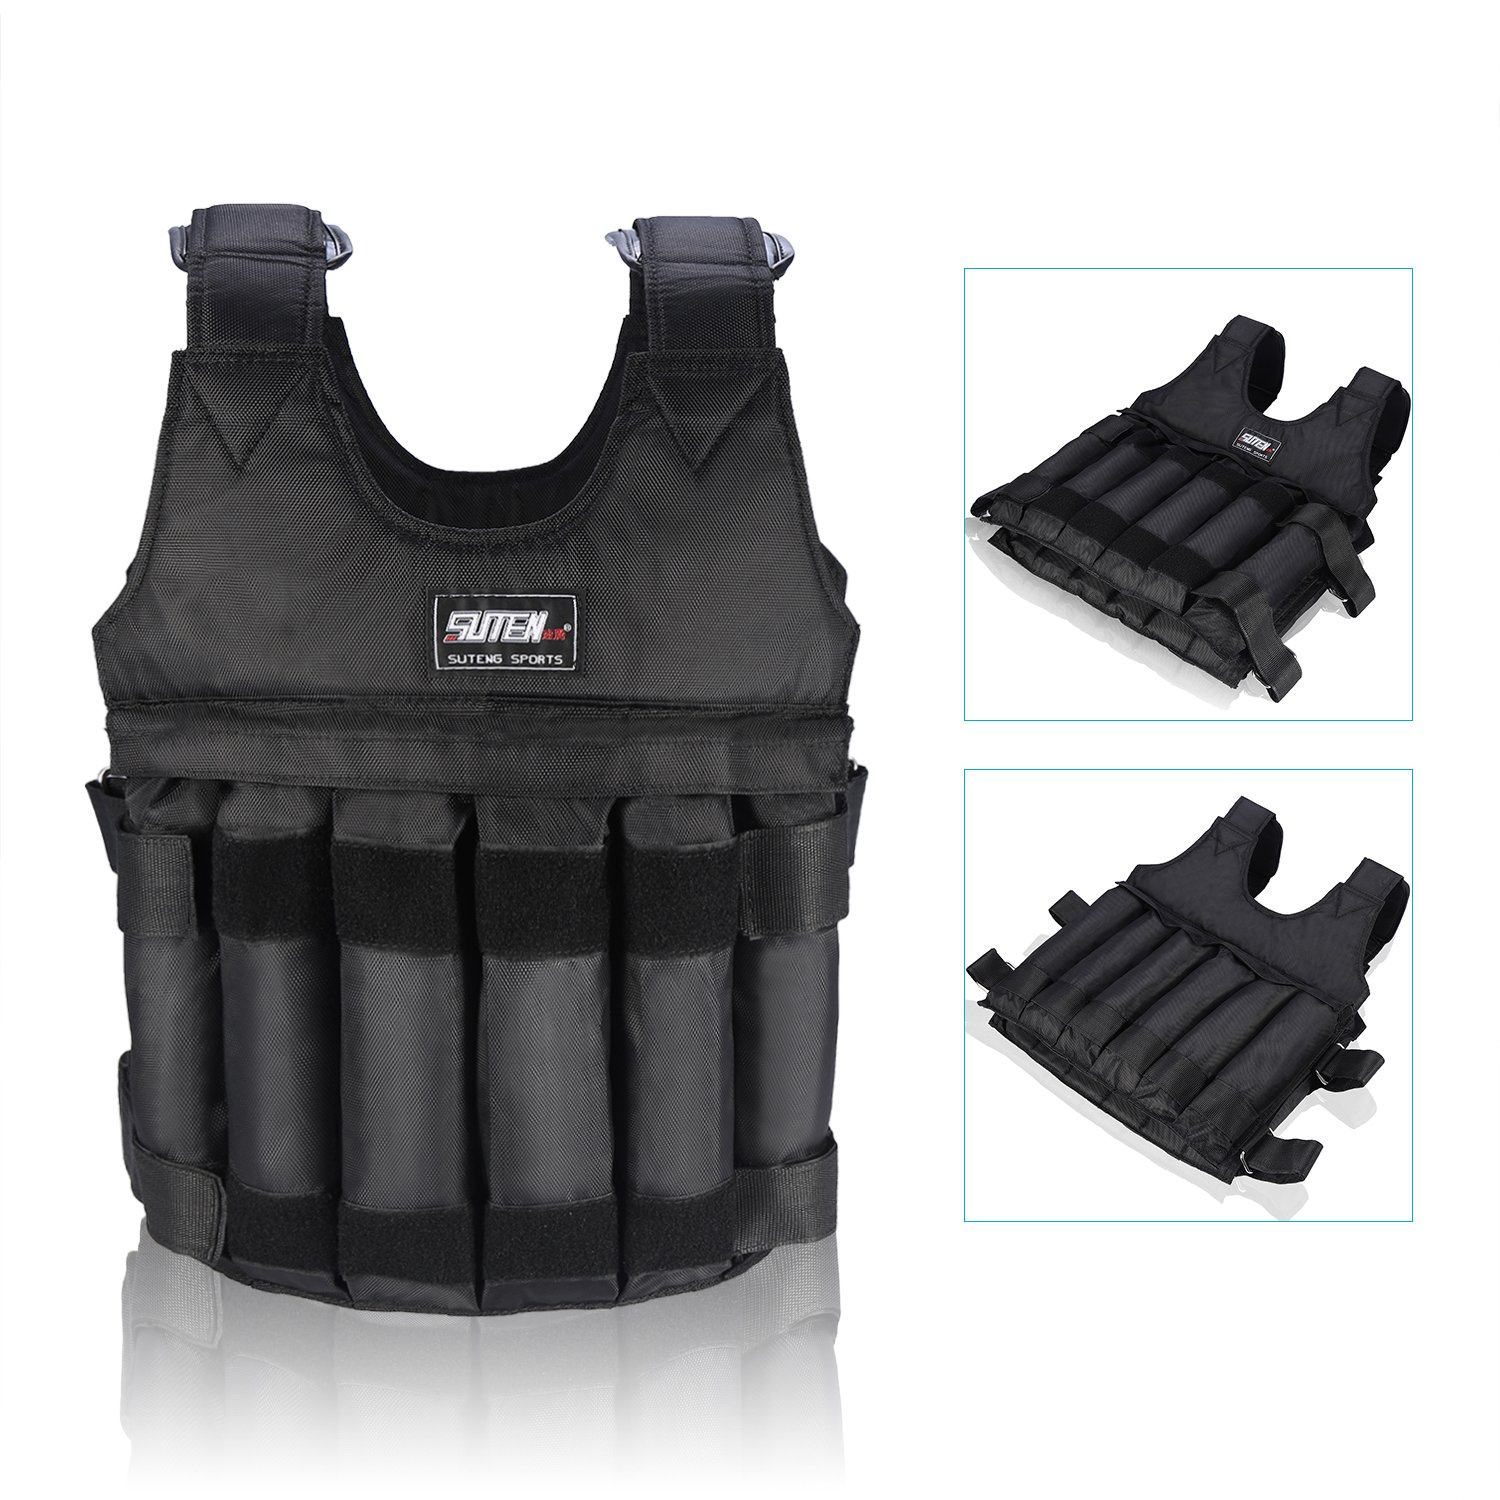 Yosoo 44LB/20KG Adjustable Weighted Vest Workout Exercise Boxing Training Fitness (Weights not Included) by Yosoo